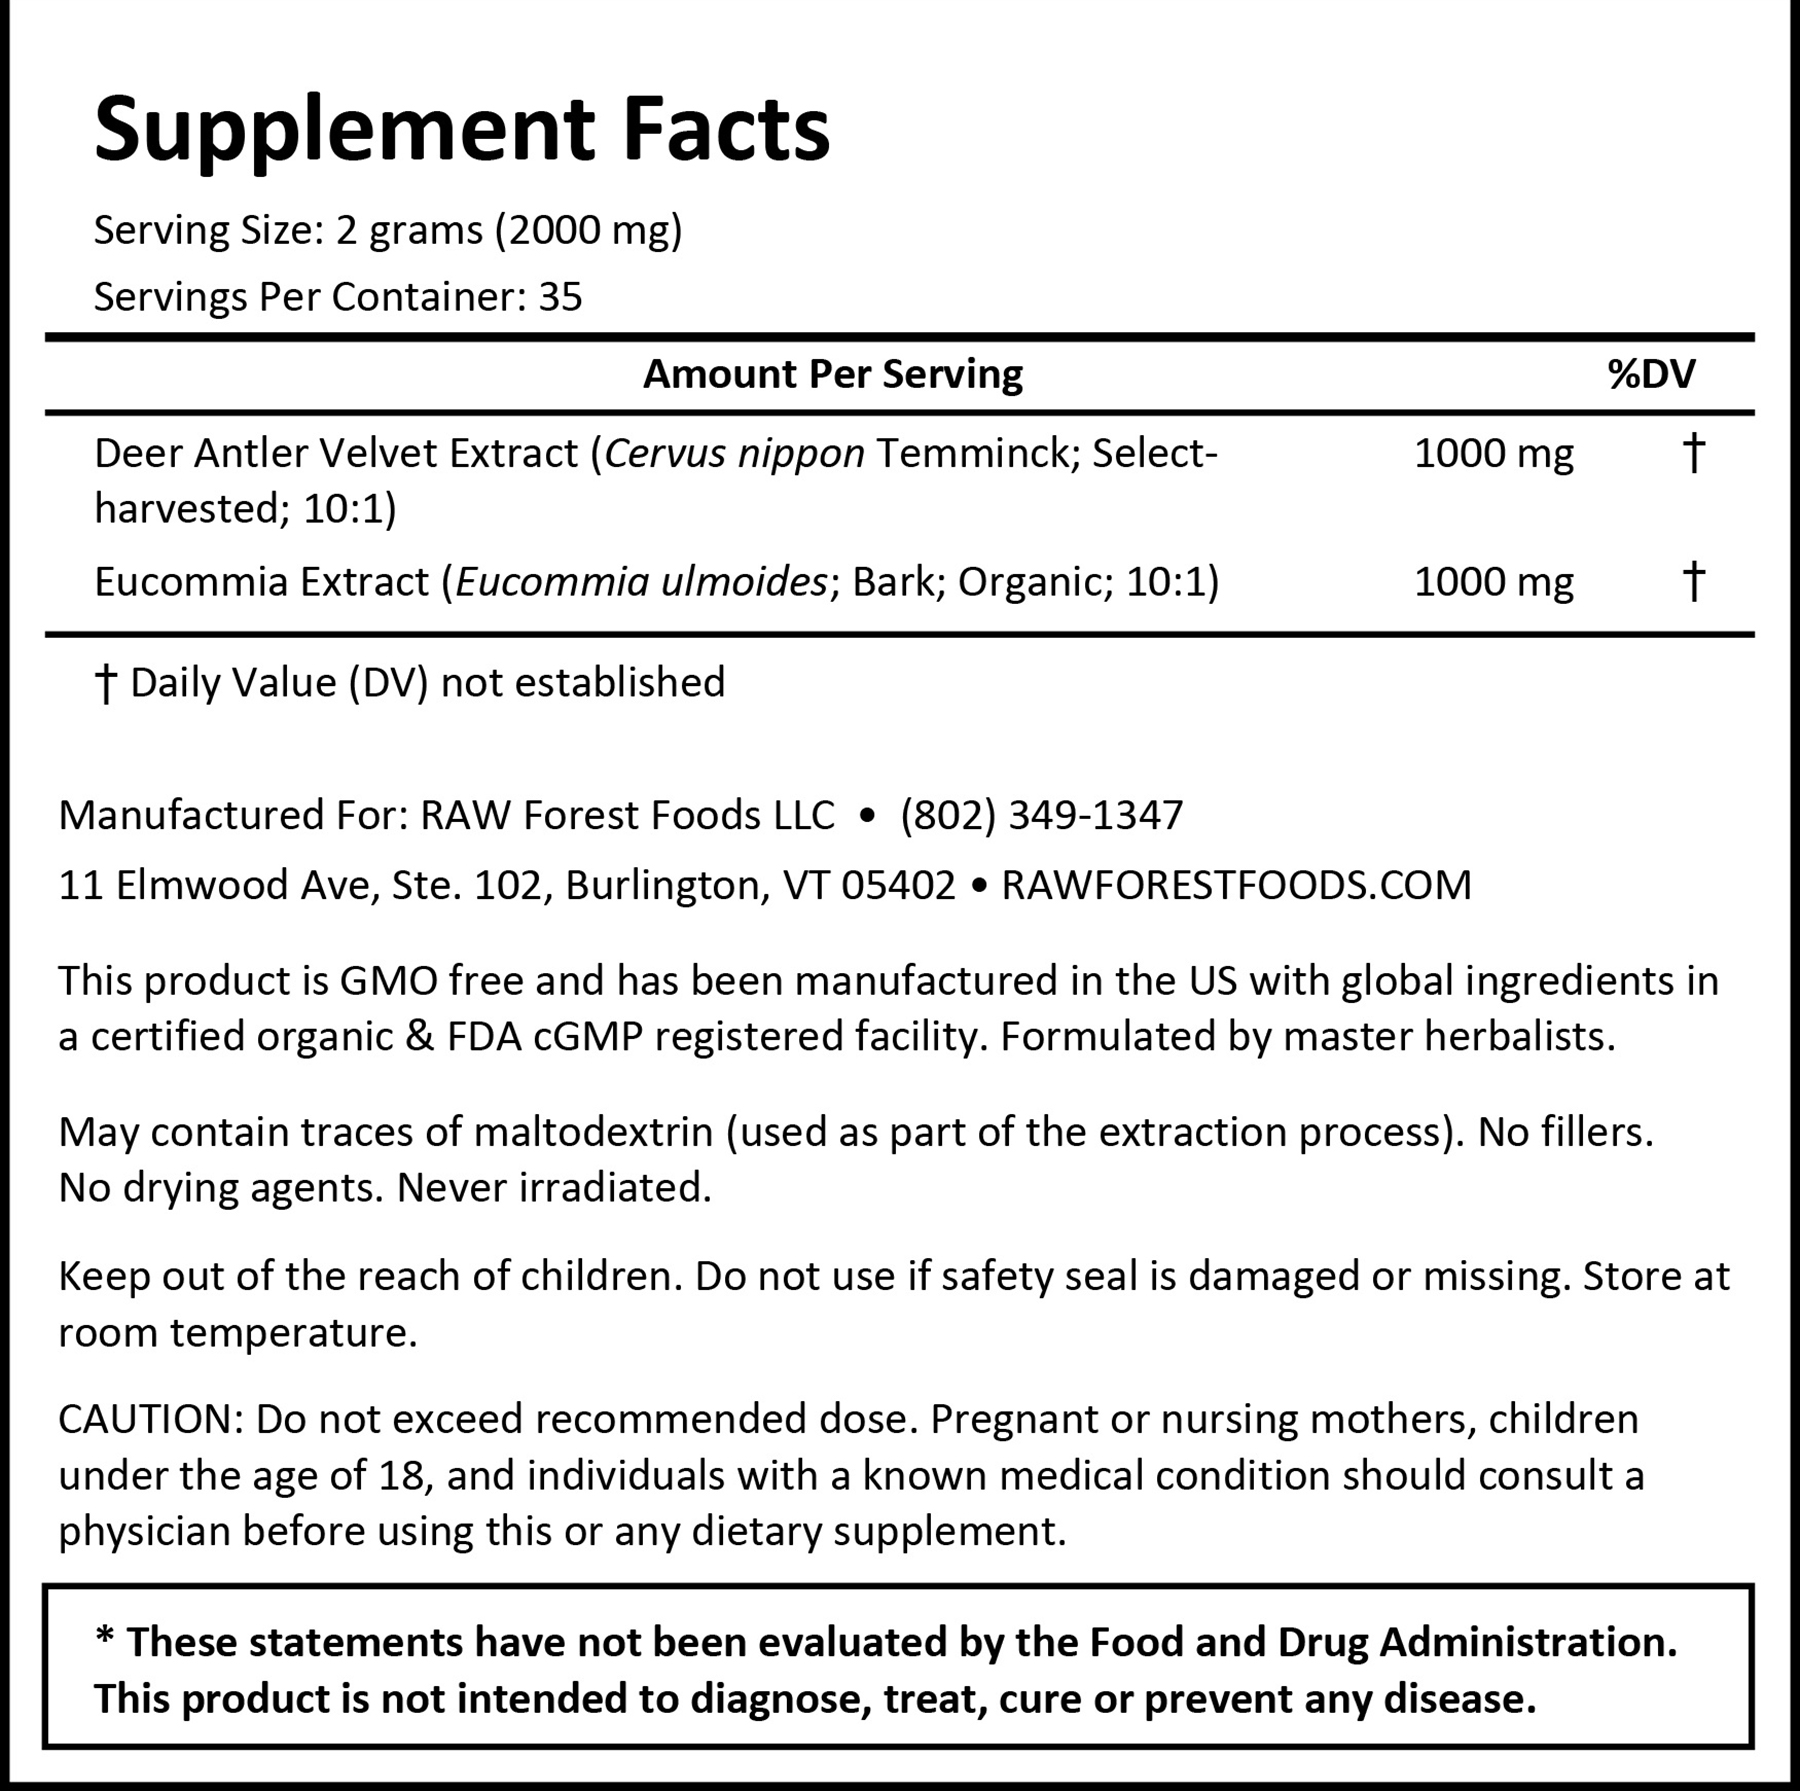 eucommia-and-deer-antler-velvet-extract-powder-supplement-facts.jpg